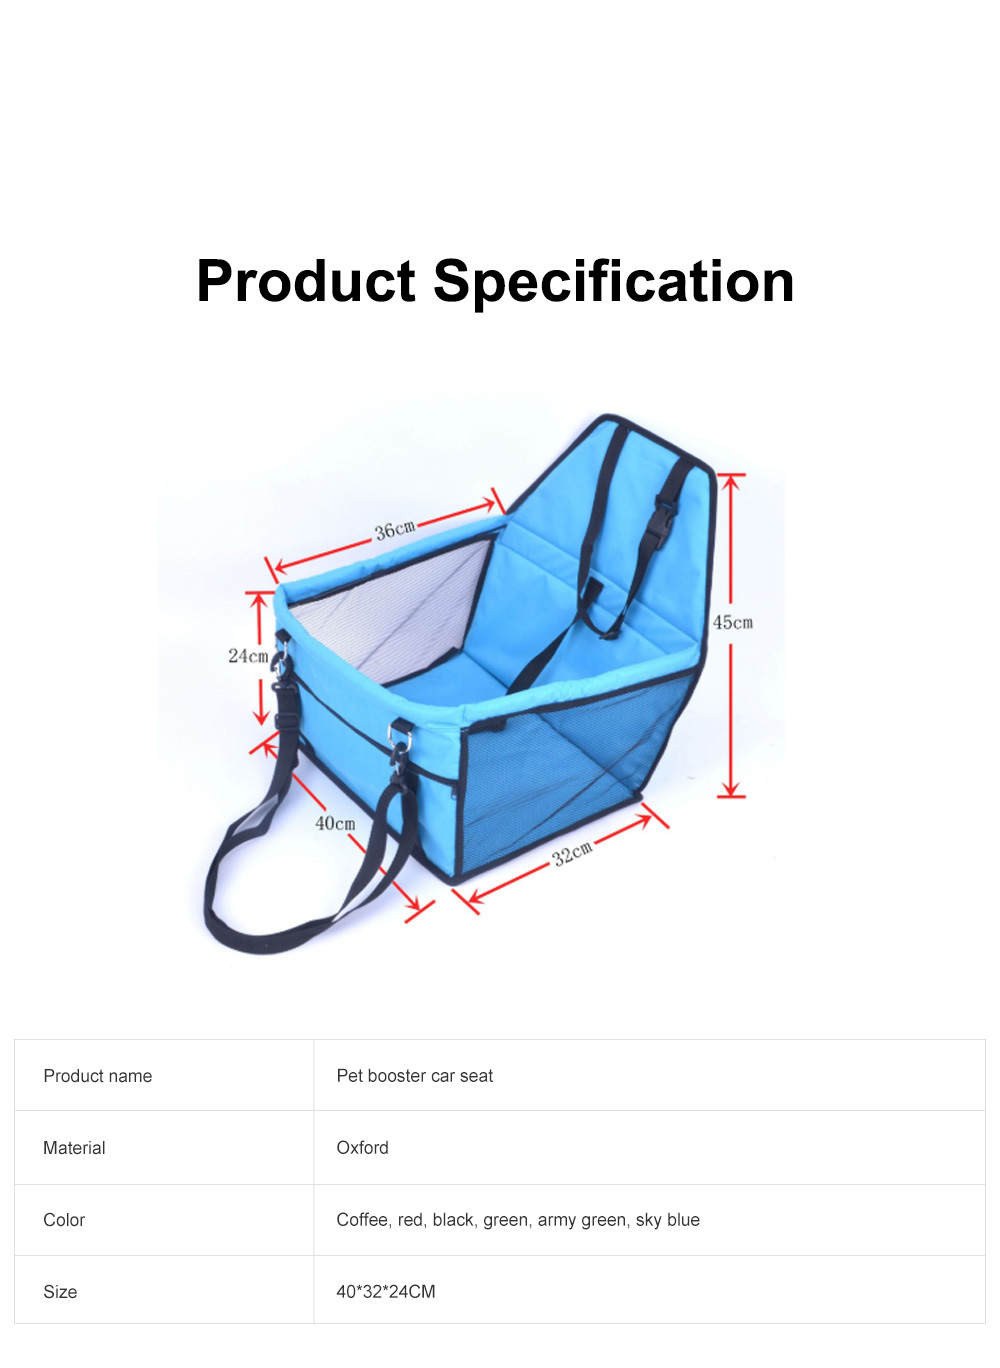 Collapsible Pet Booster Car Seat Cat Car Carrier with Safety Leash and Zipper Storage Pocket with 2 Support Bars for Small Dog 7